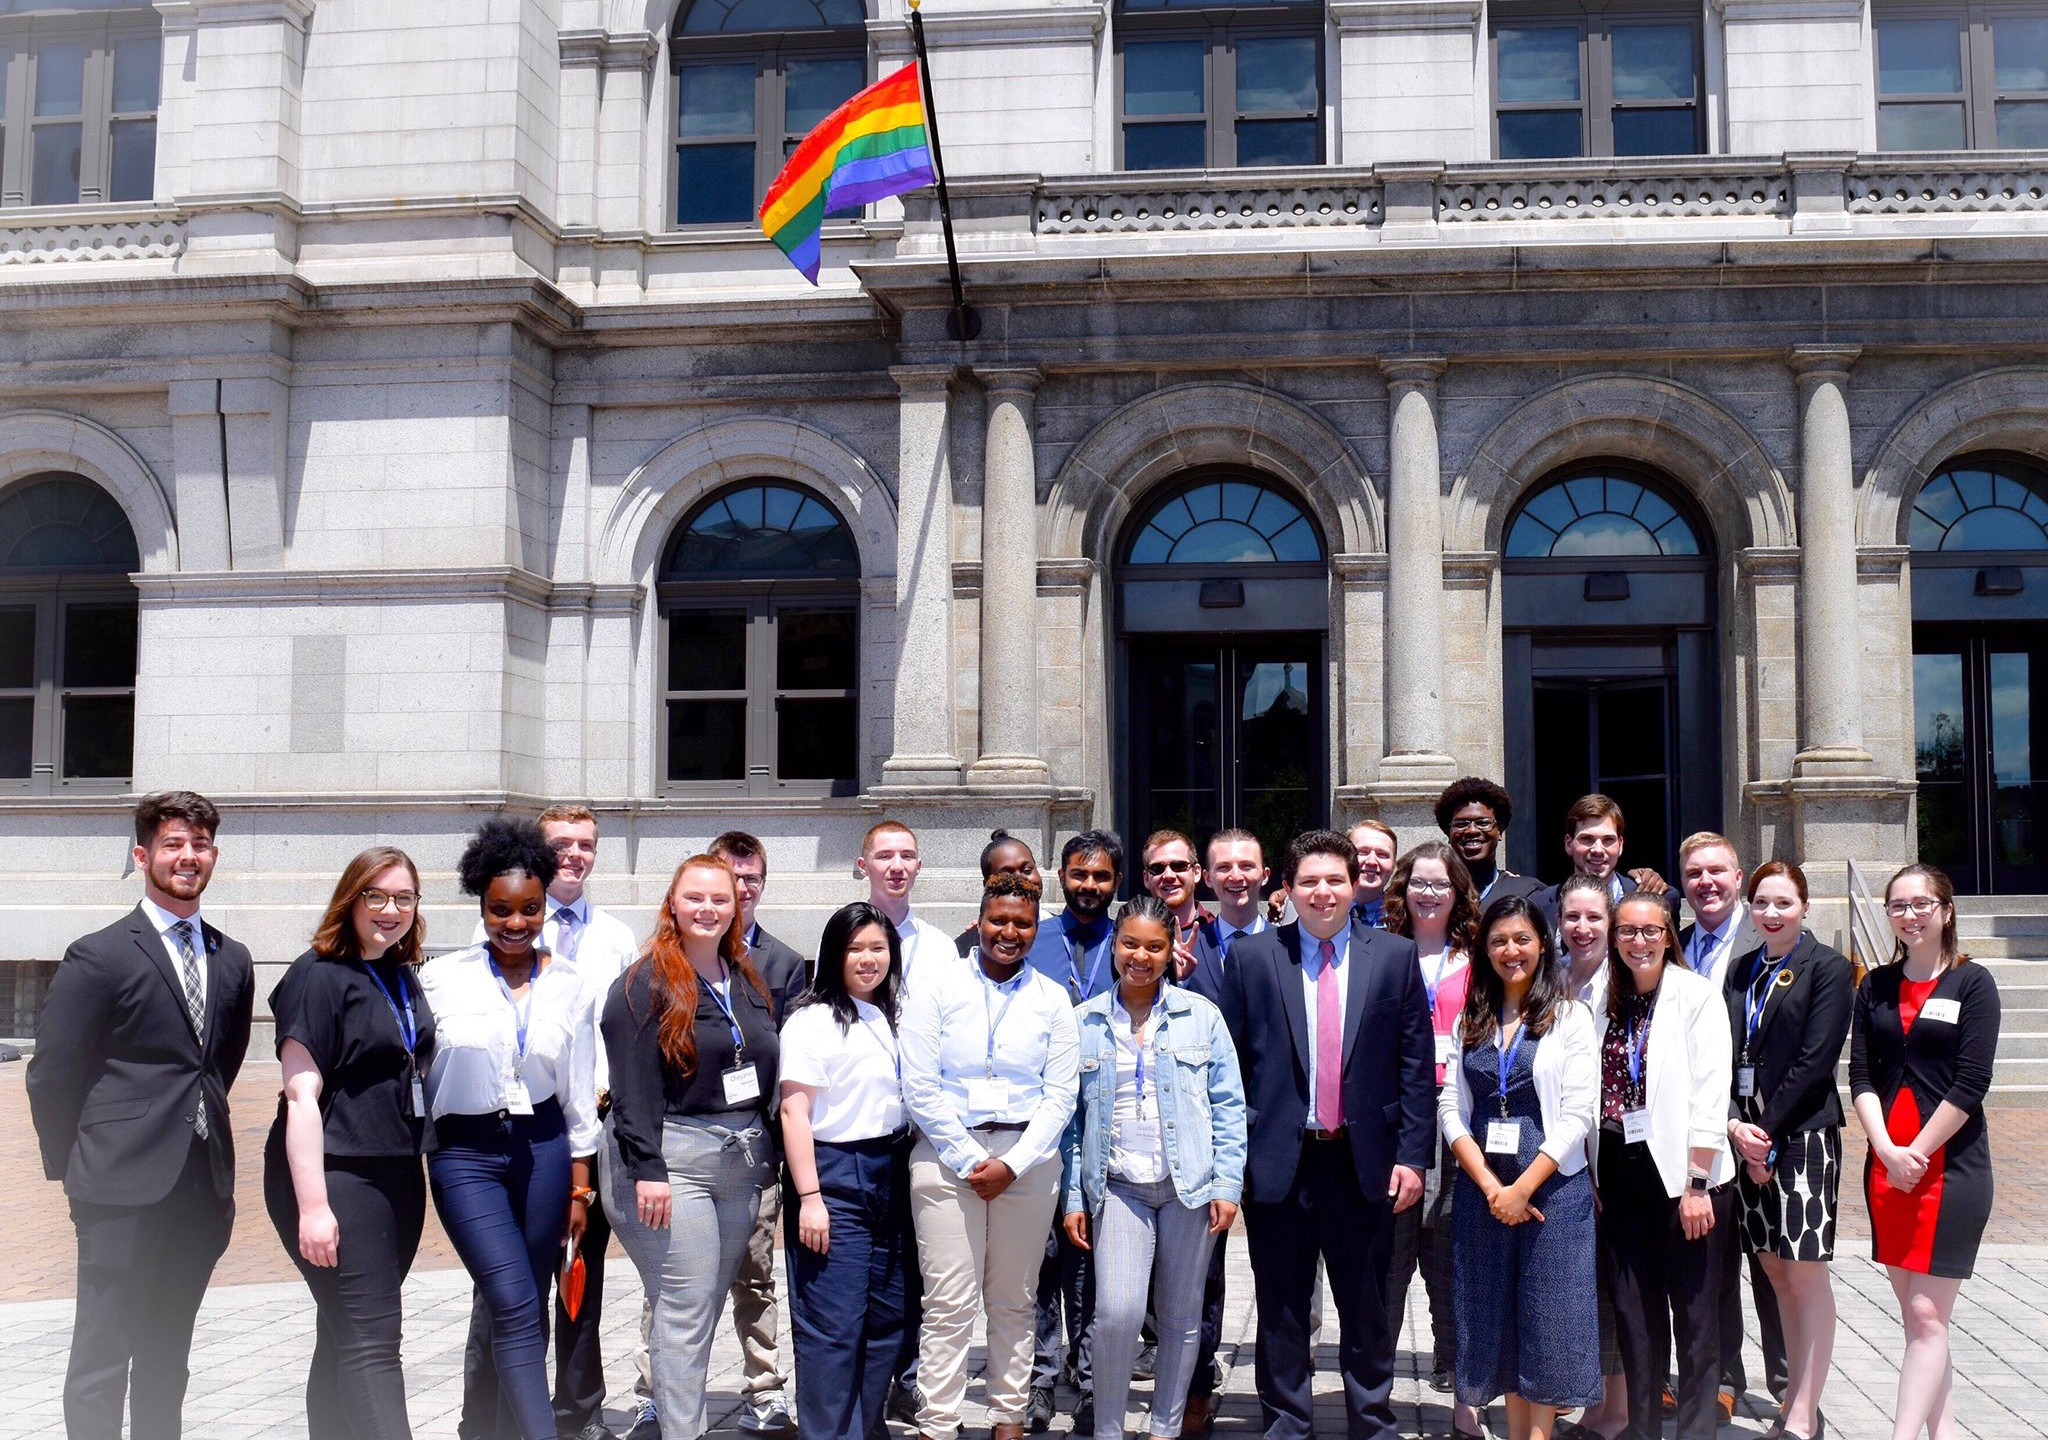 All SUNY Voices student attendees standing together outside of SUNY Plaza in front of a rainbow pride flag